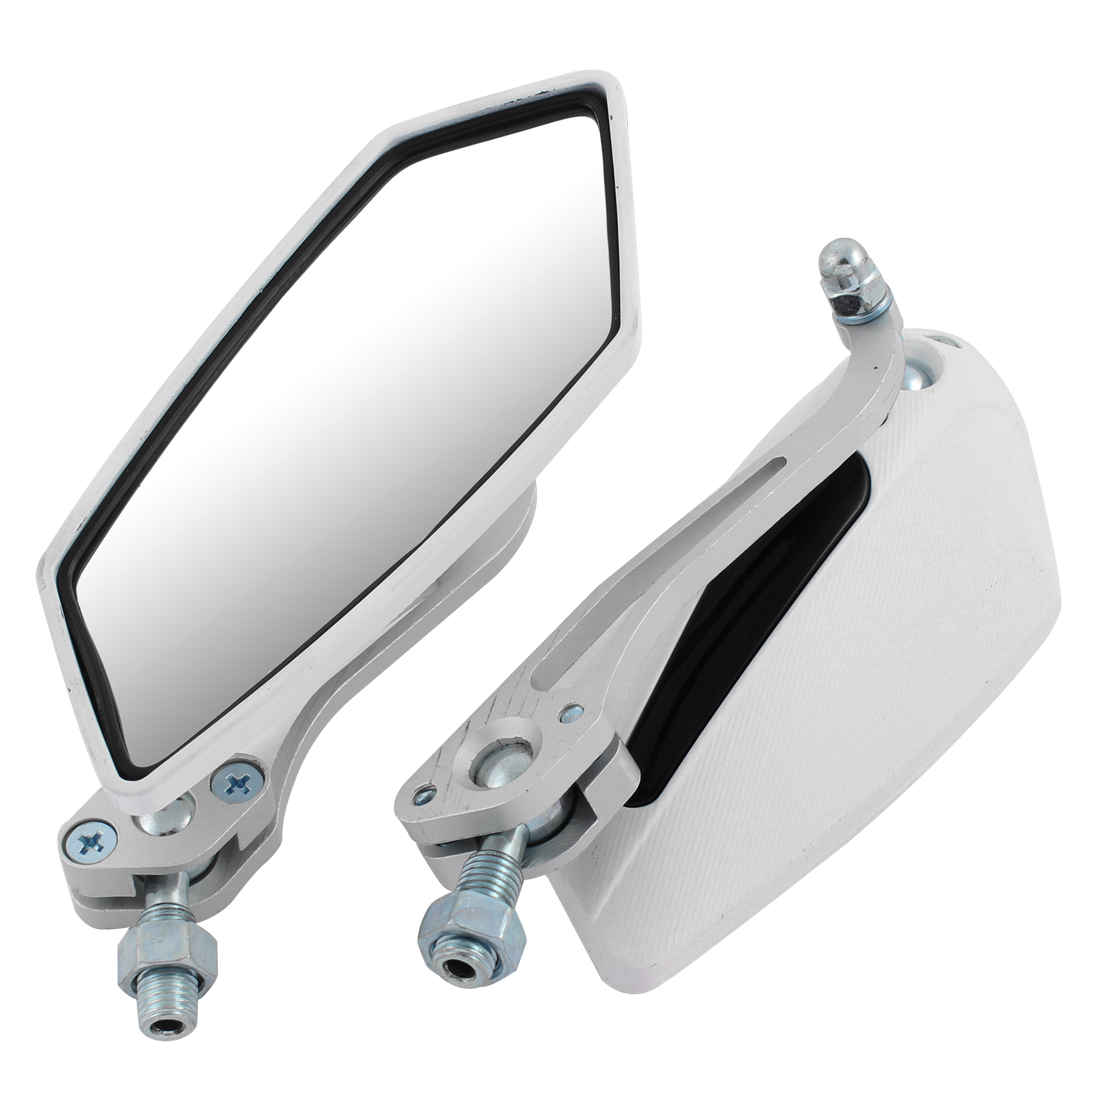 Unique Bargains Pair White Casing Wide Angle Rearview Blind Spot Mirror for Motorcycle